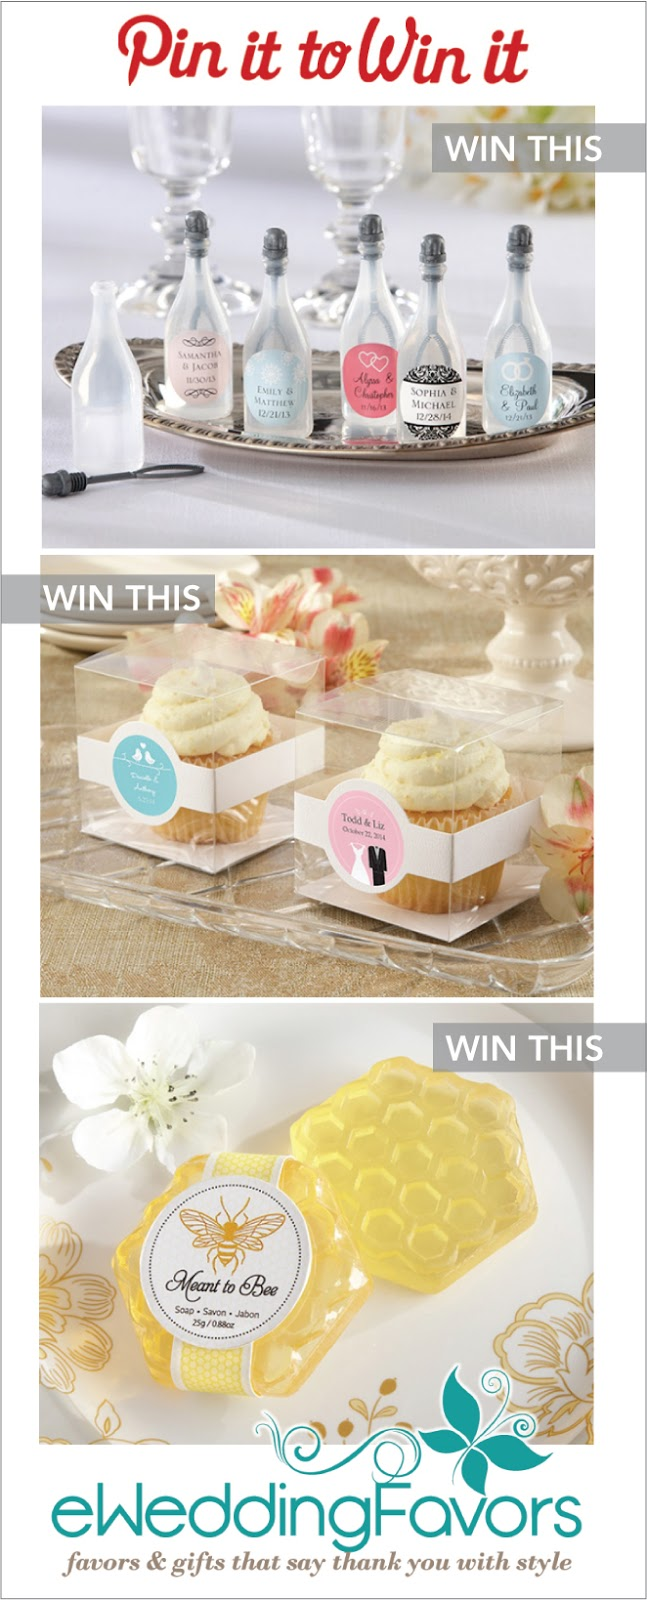 Introducing eWeddingFavors.com + ?Pin It To Win It? Giveaway